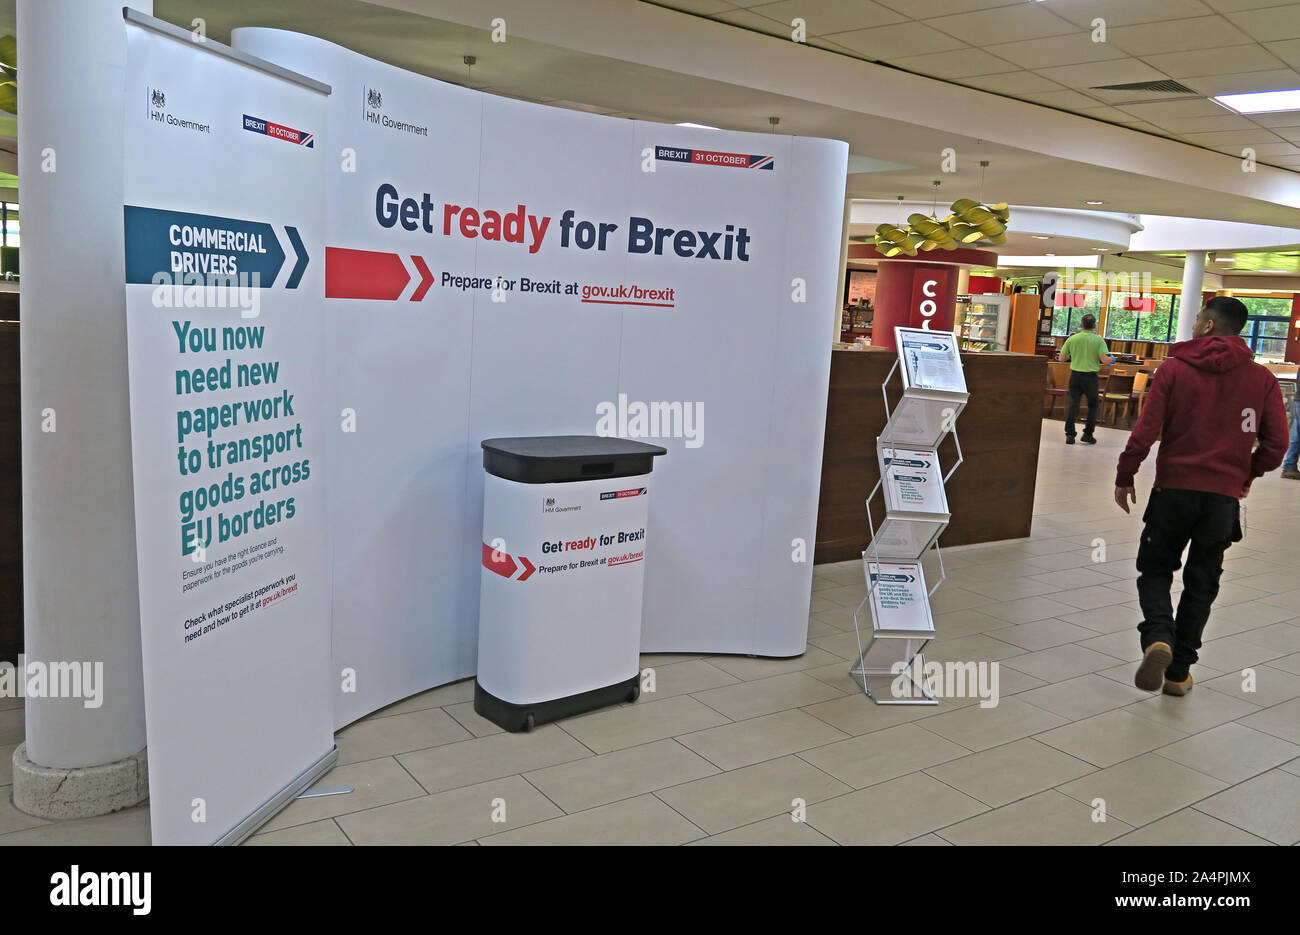 Get Ready For Brexit stand, at M5 Motorway Services, Gloucestershire, South West England, UK Stock Photo